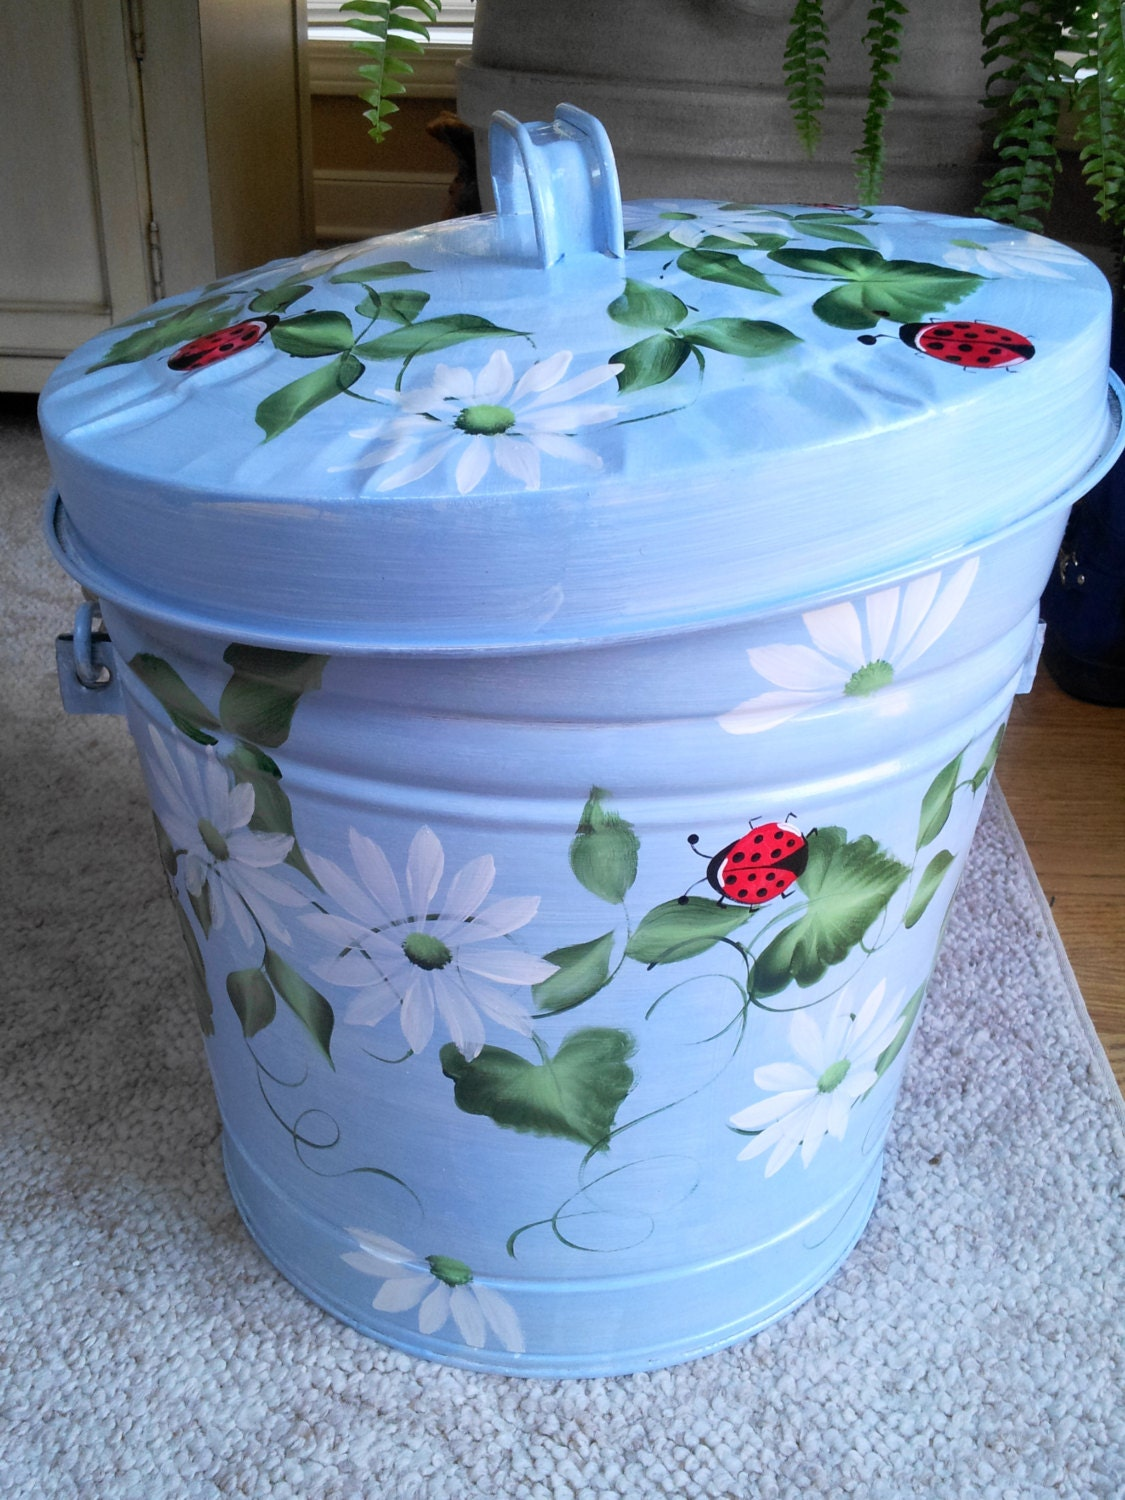 6 Gallon Hand Painted Galvanized Trash Can